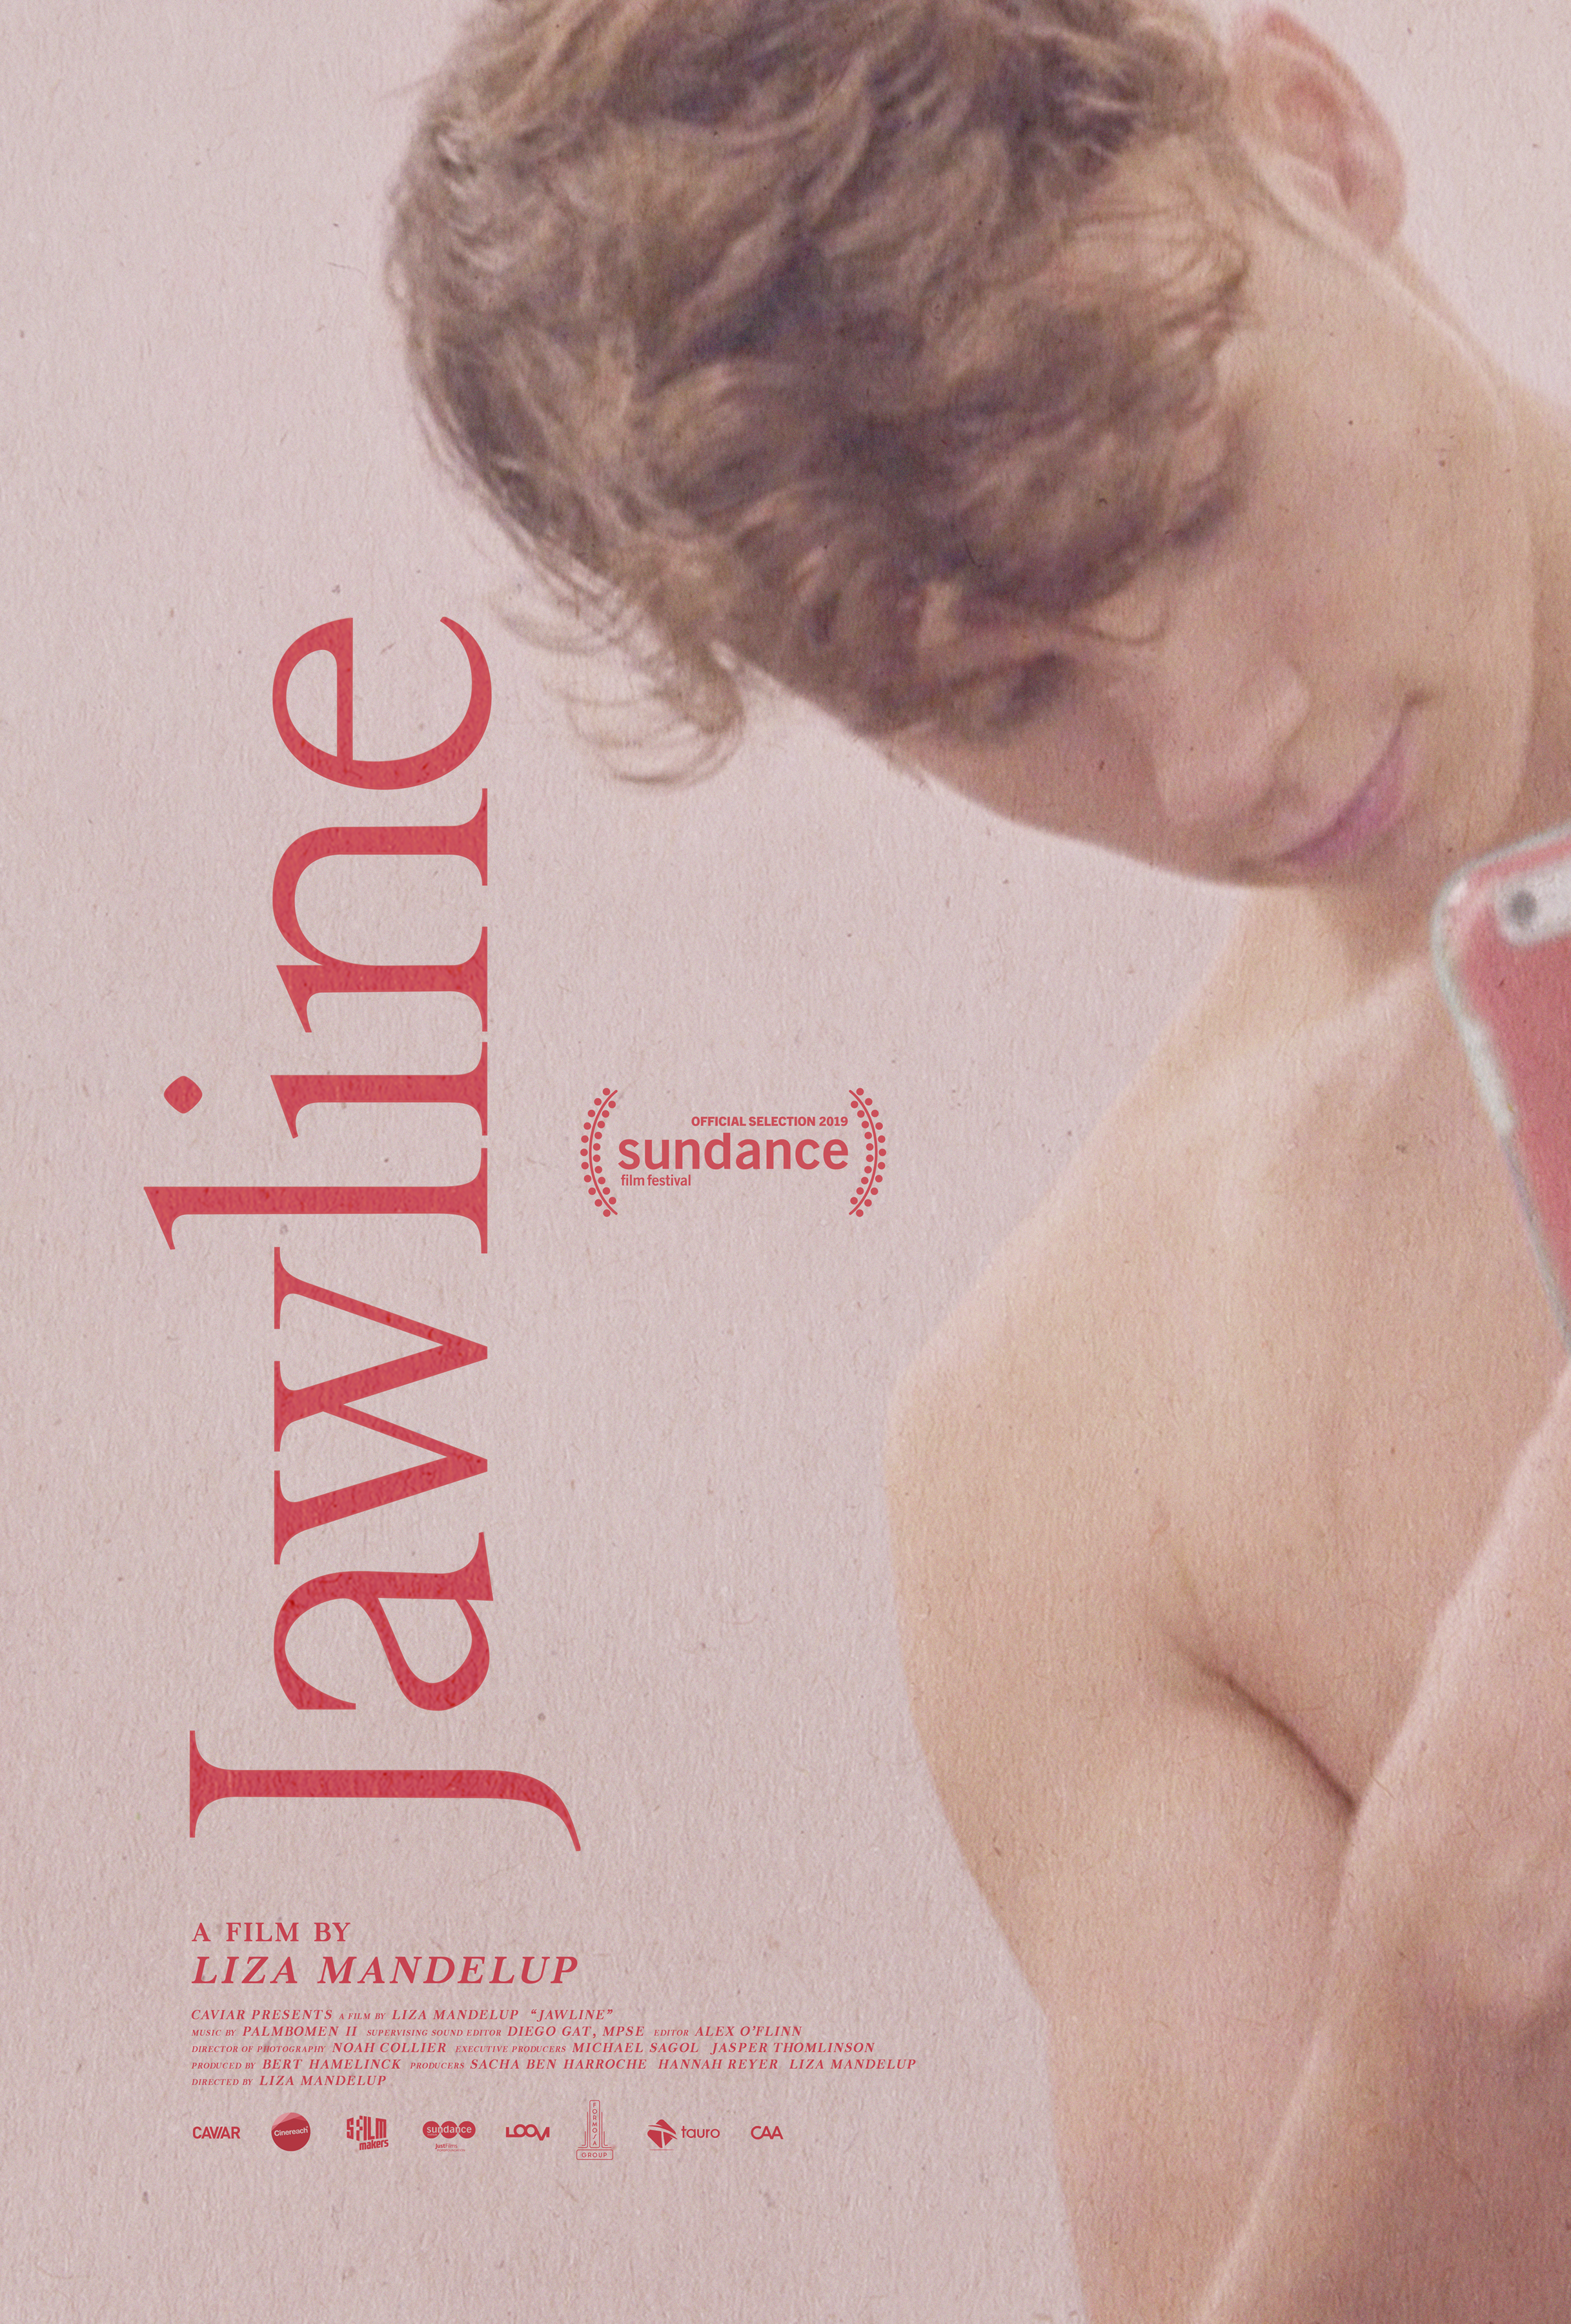 Image result for Jawline movie poster 2019